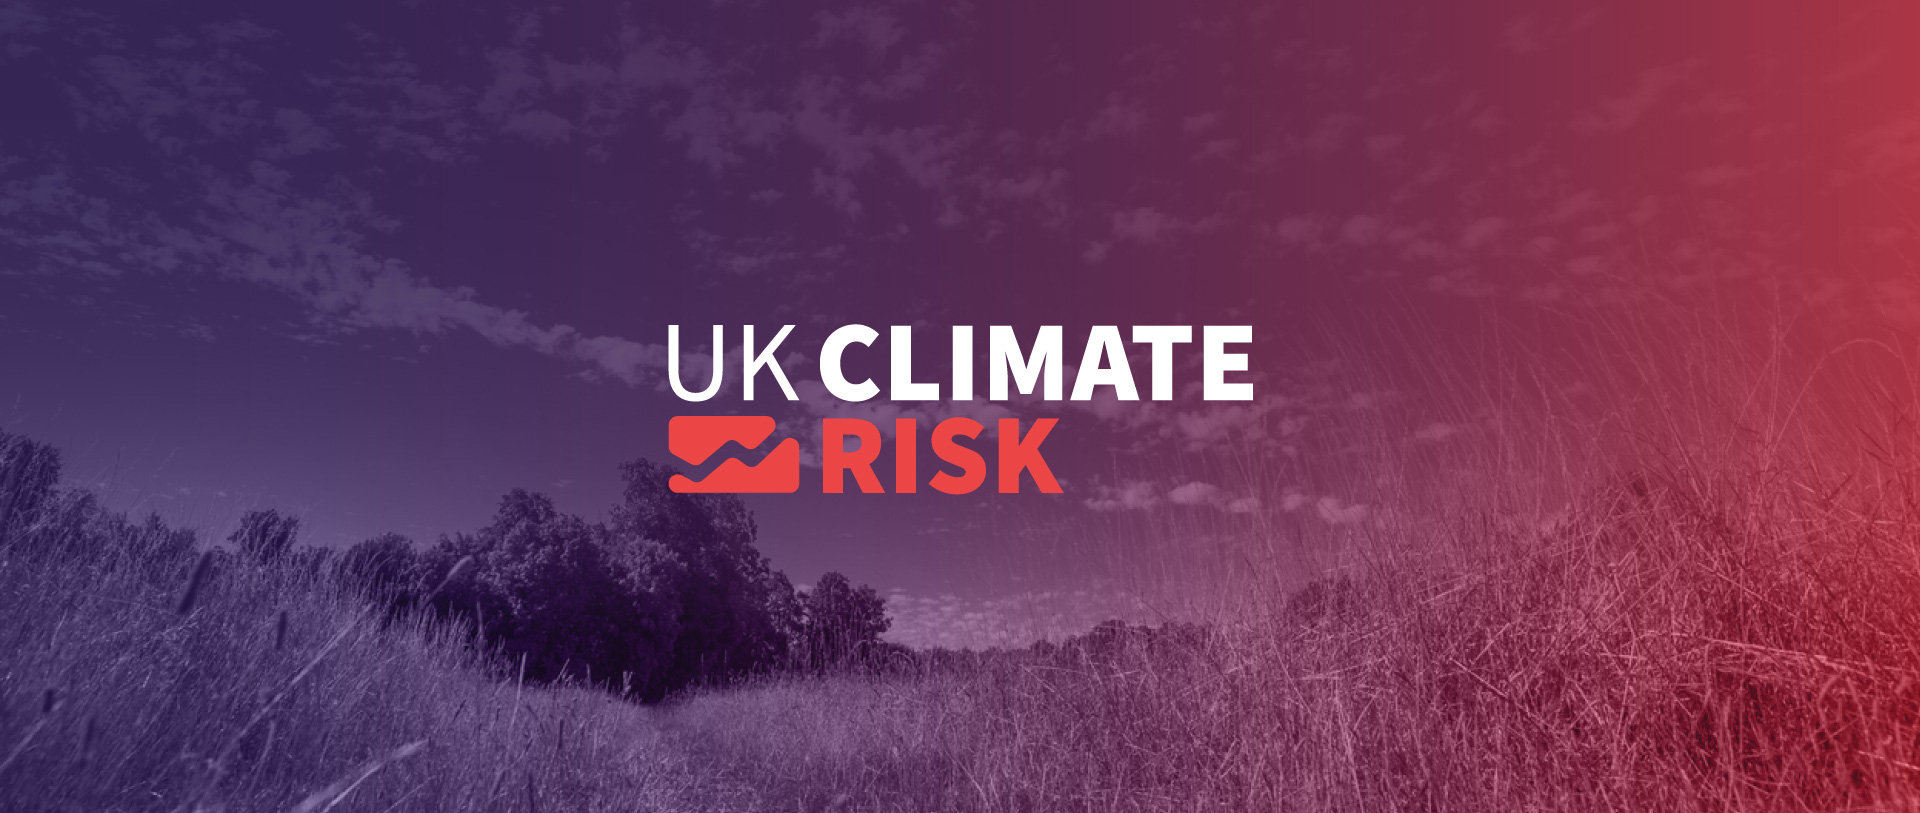 UK Climate Risk Website